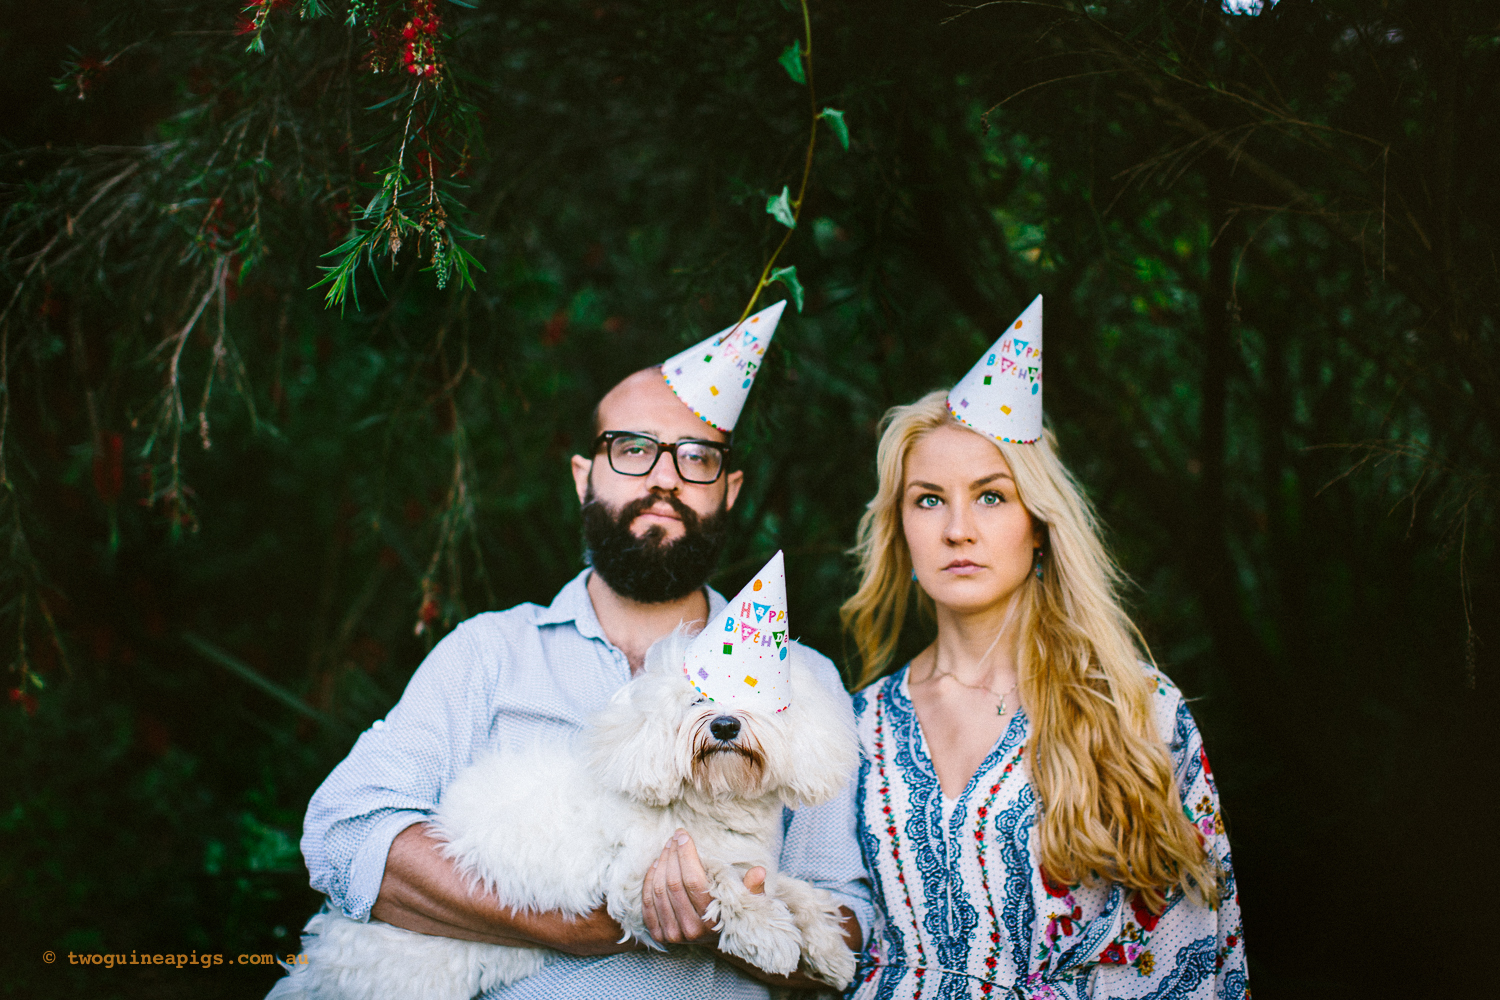 twoguineapigs_pet_photography_dalston_1st_birthday_liv_lundelius_family_portrait